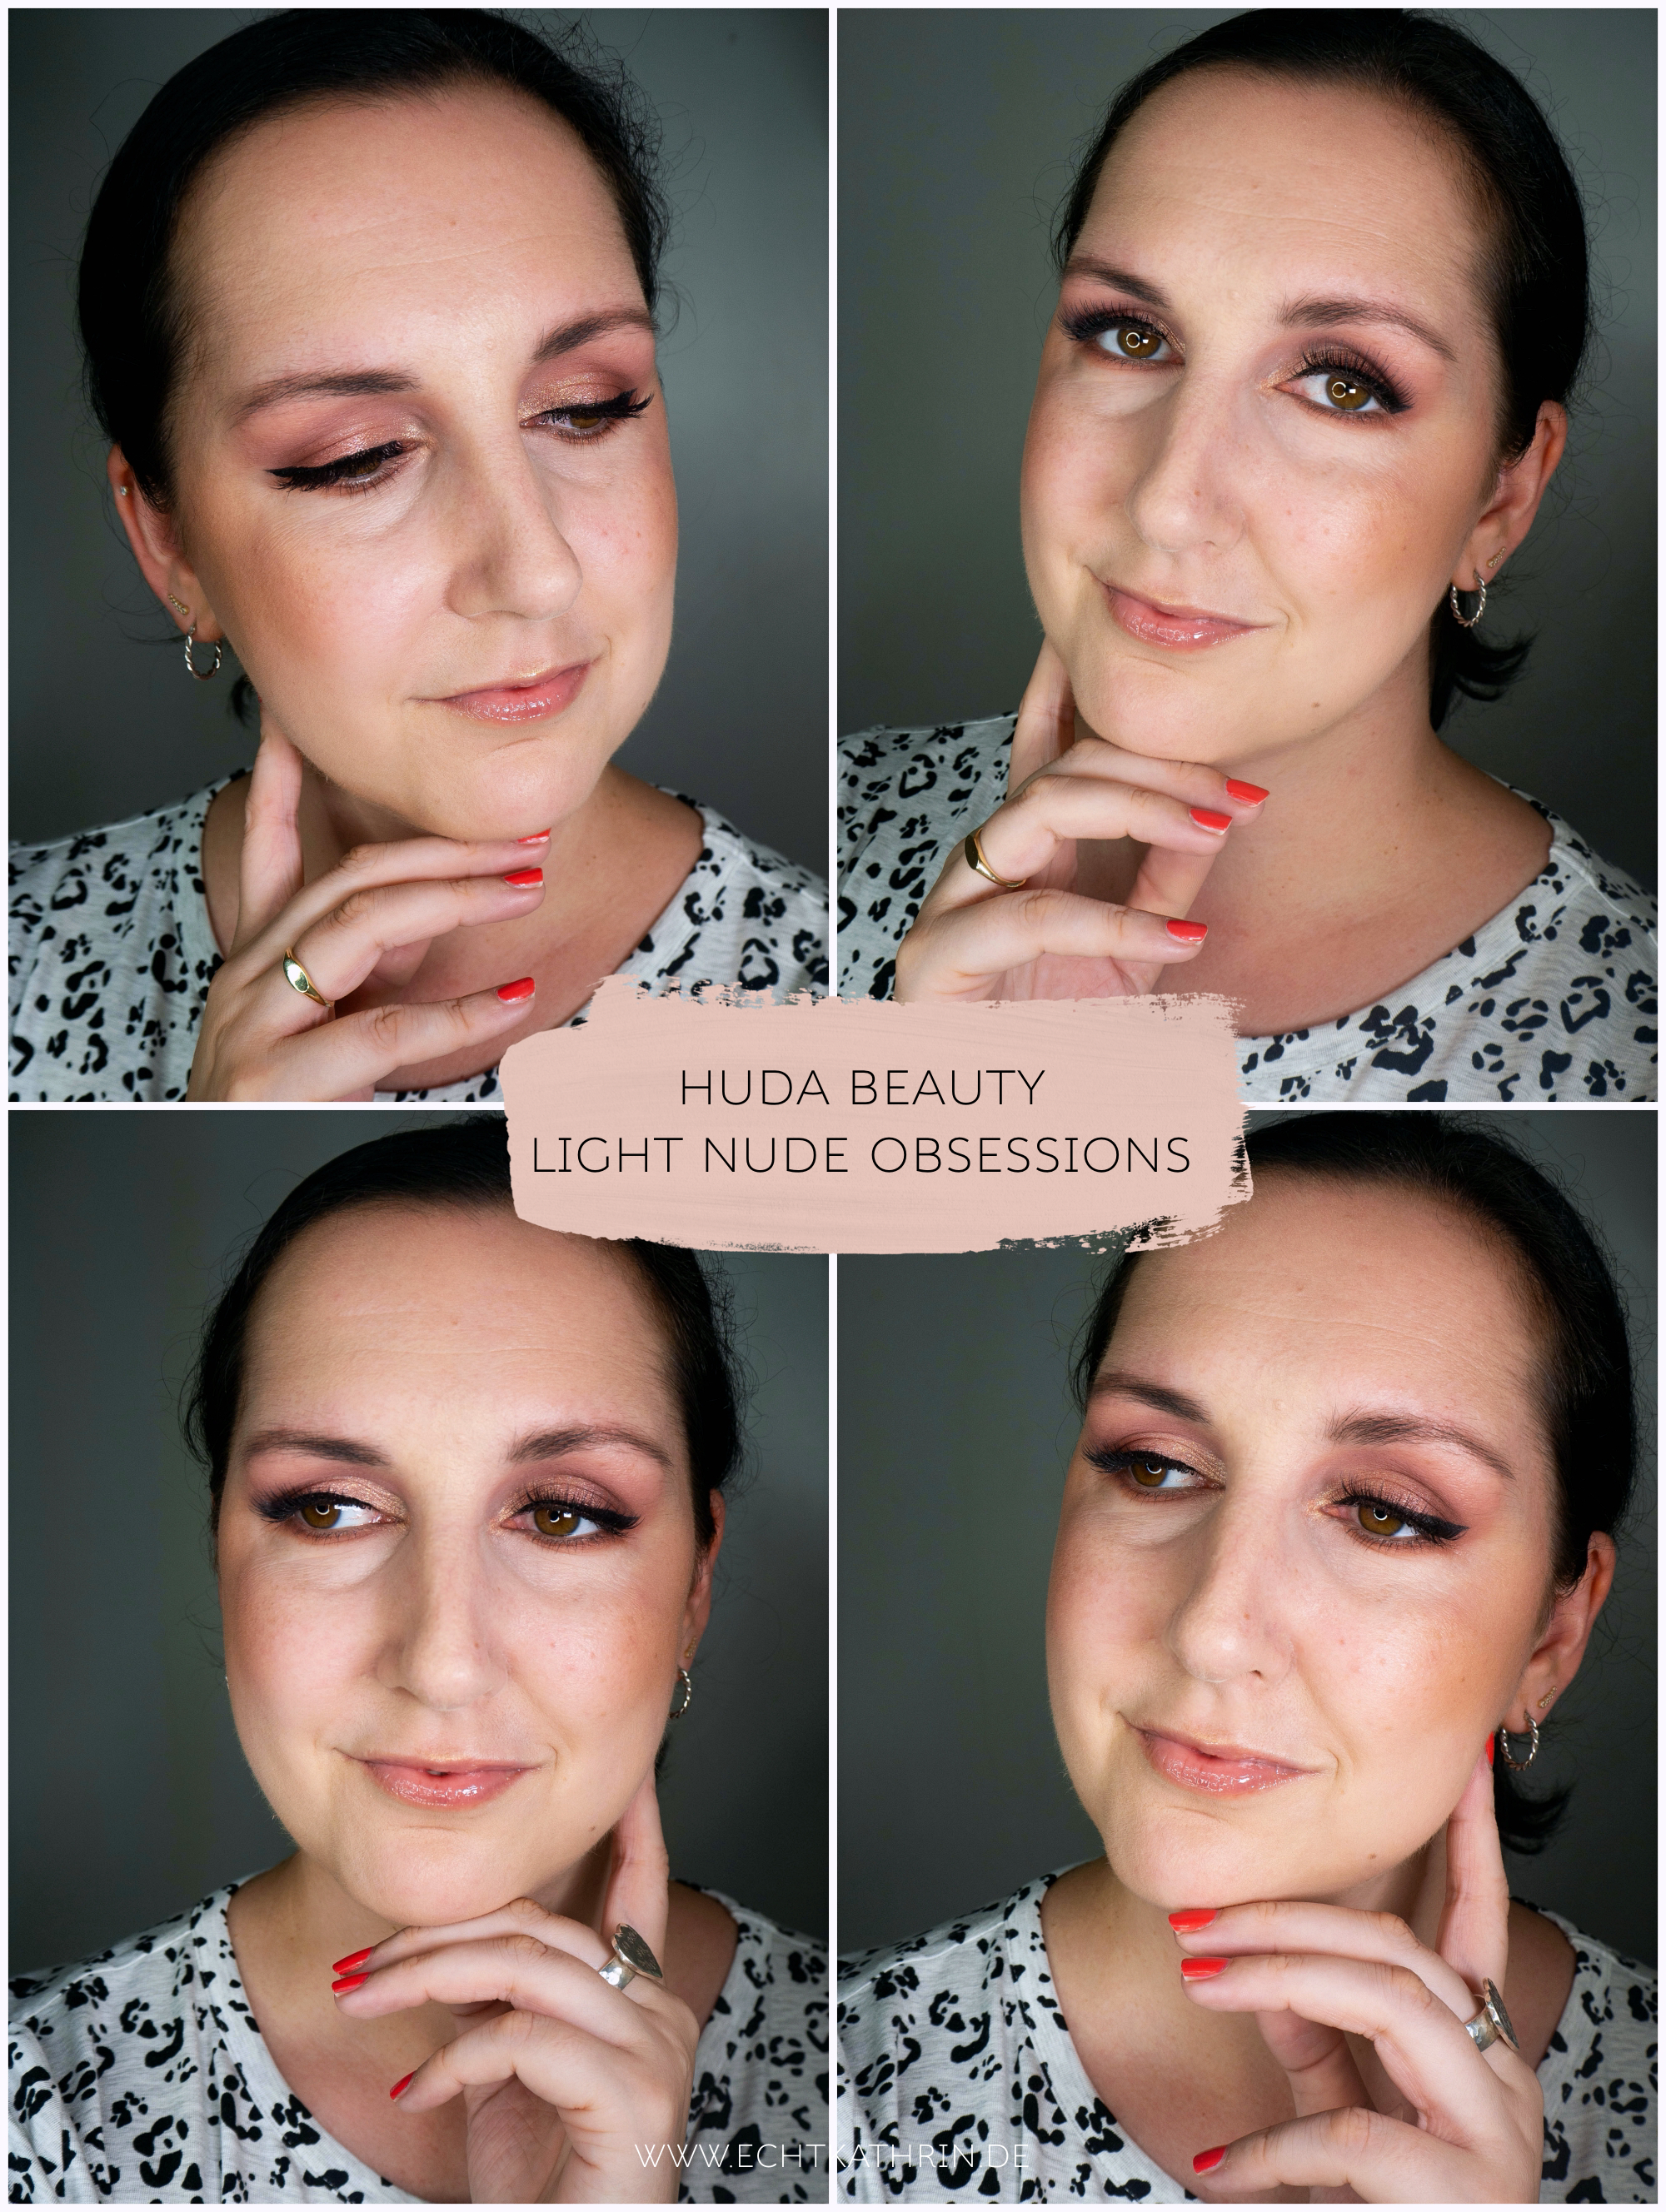 Huda Beauty Light Nude Obsessions Look echtkathrin